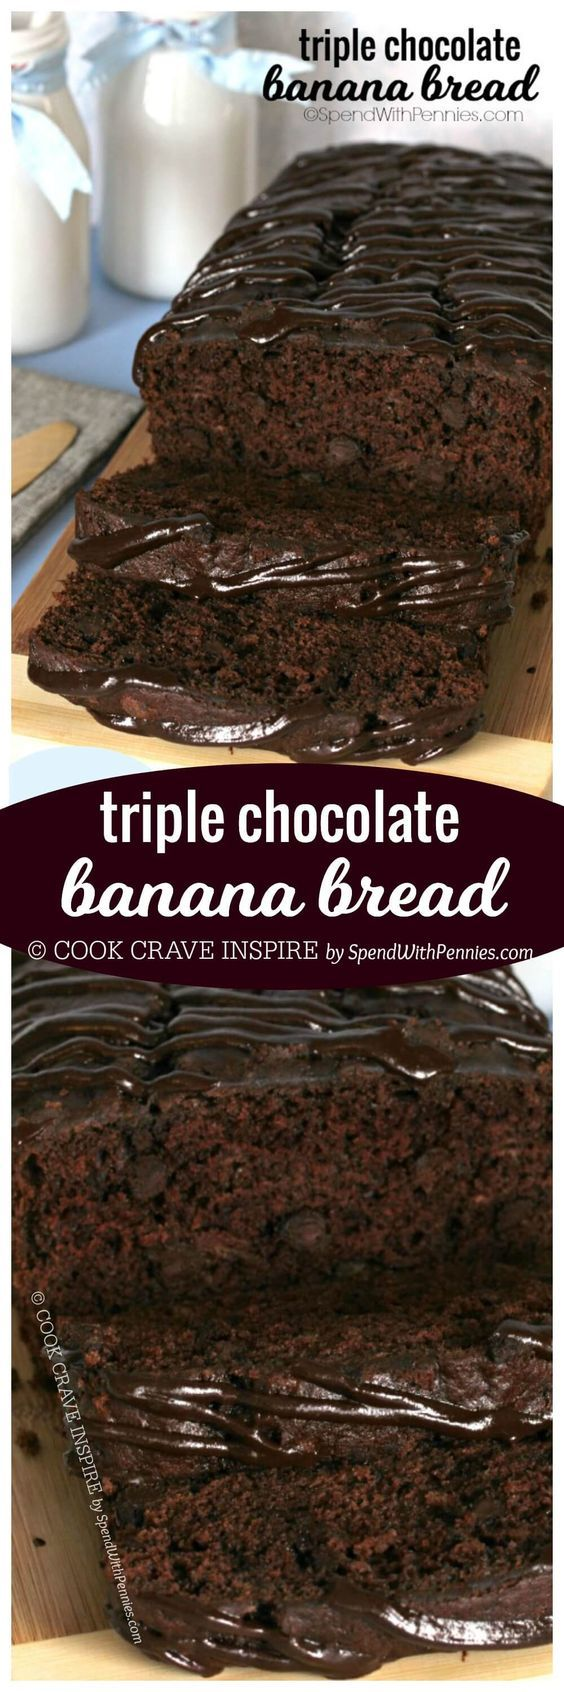 If you love chocolate, you're definitely going to LOVE this Triple Chocolate Banana Bread! With a triple load of chocolate, it's deliciously decadent and easy to make!